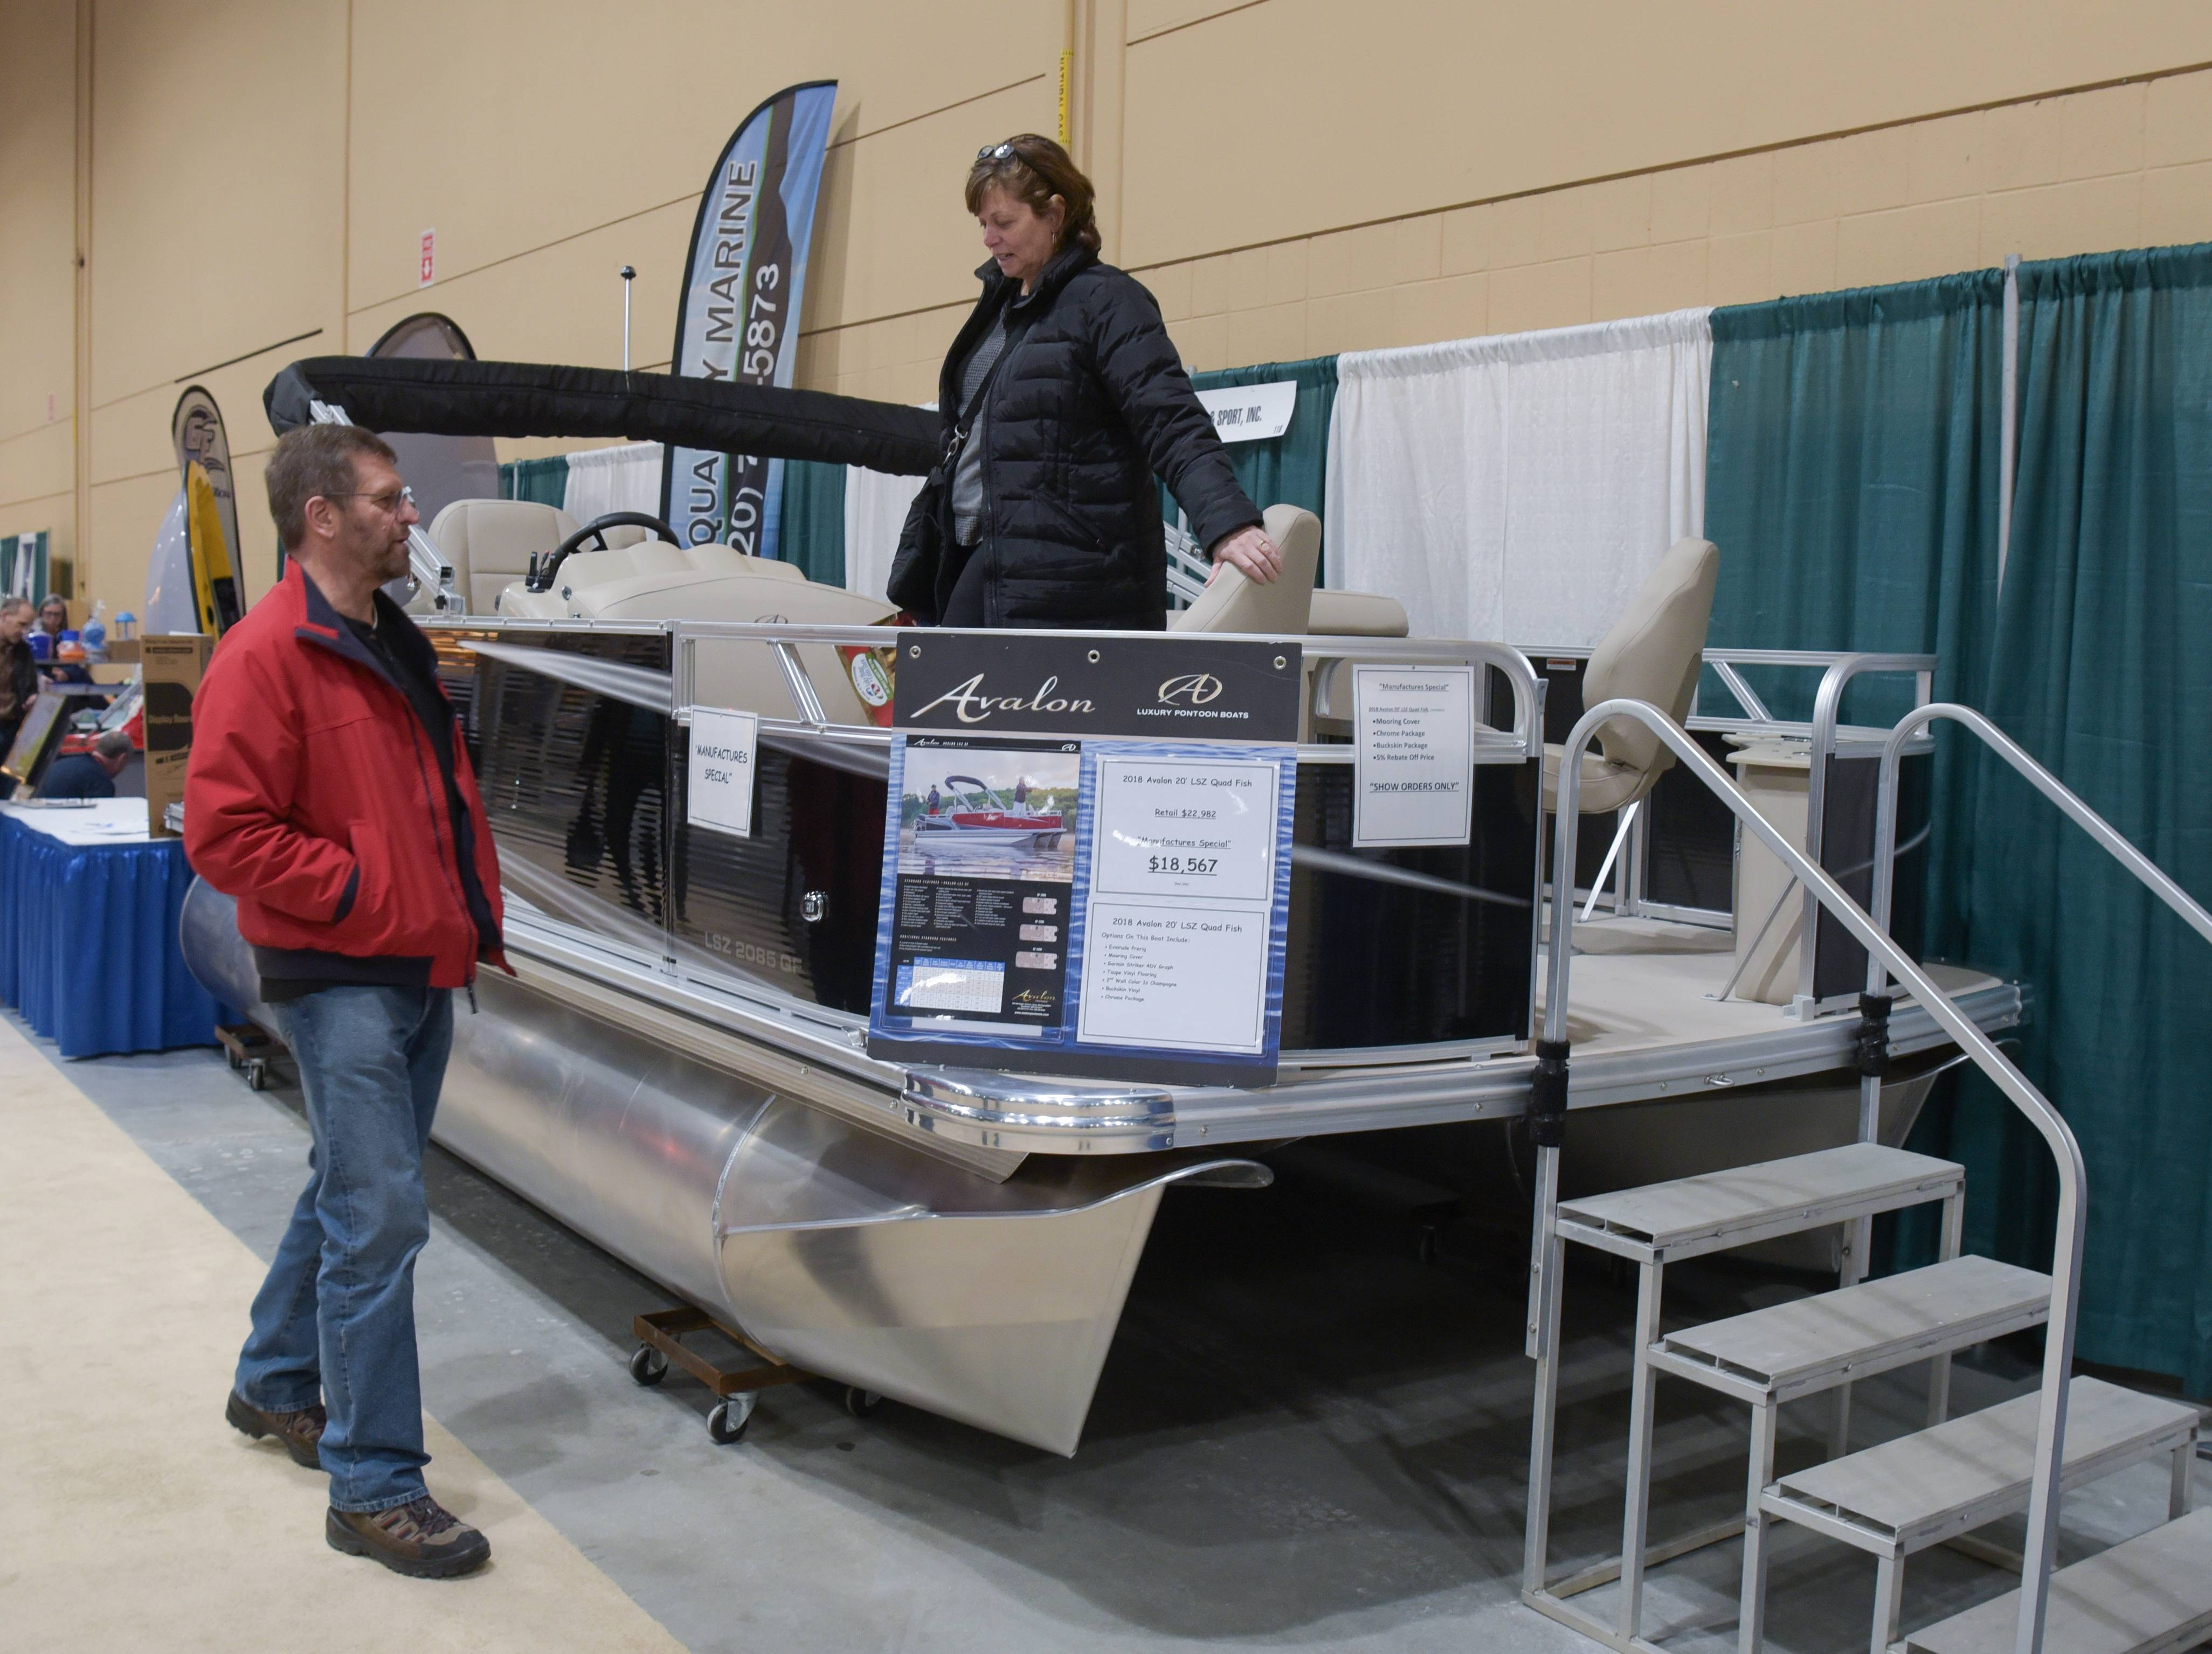 Grant and Linda Vankerk of Downers Grove check out a pontoon boat Sunday at the annual Schaumburg Lake Home & Cabin Show at the Schaumburg Convention Center.